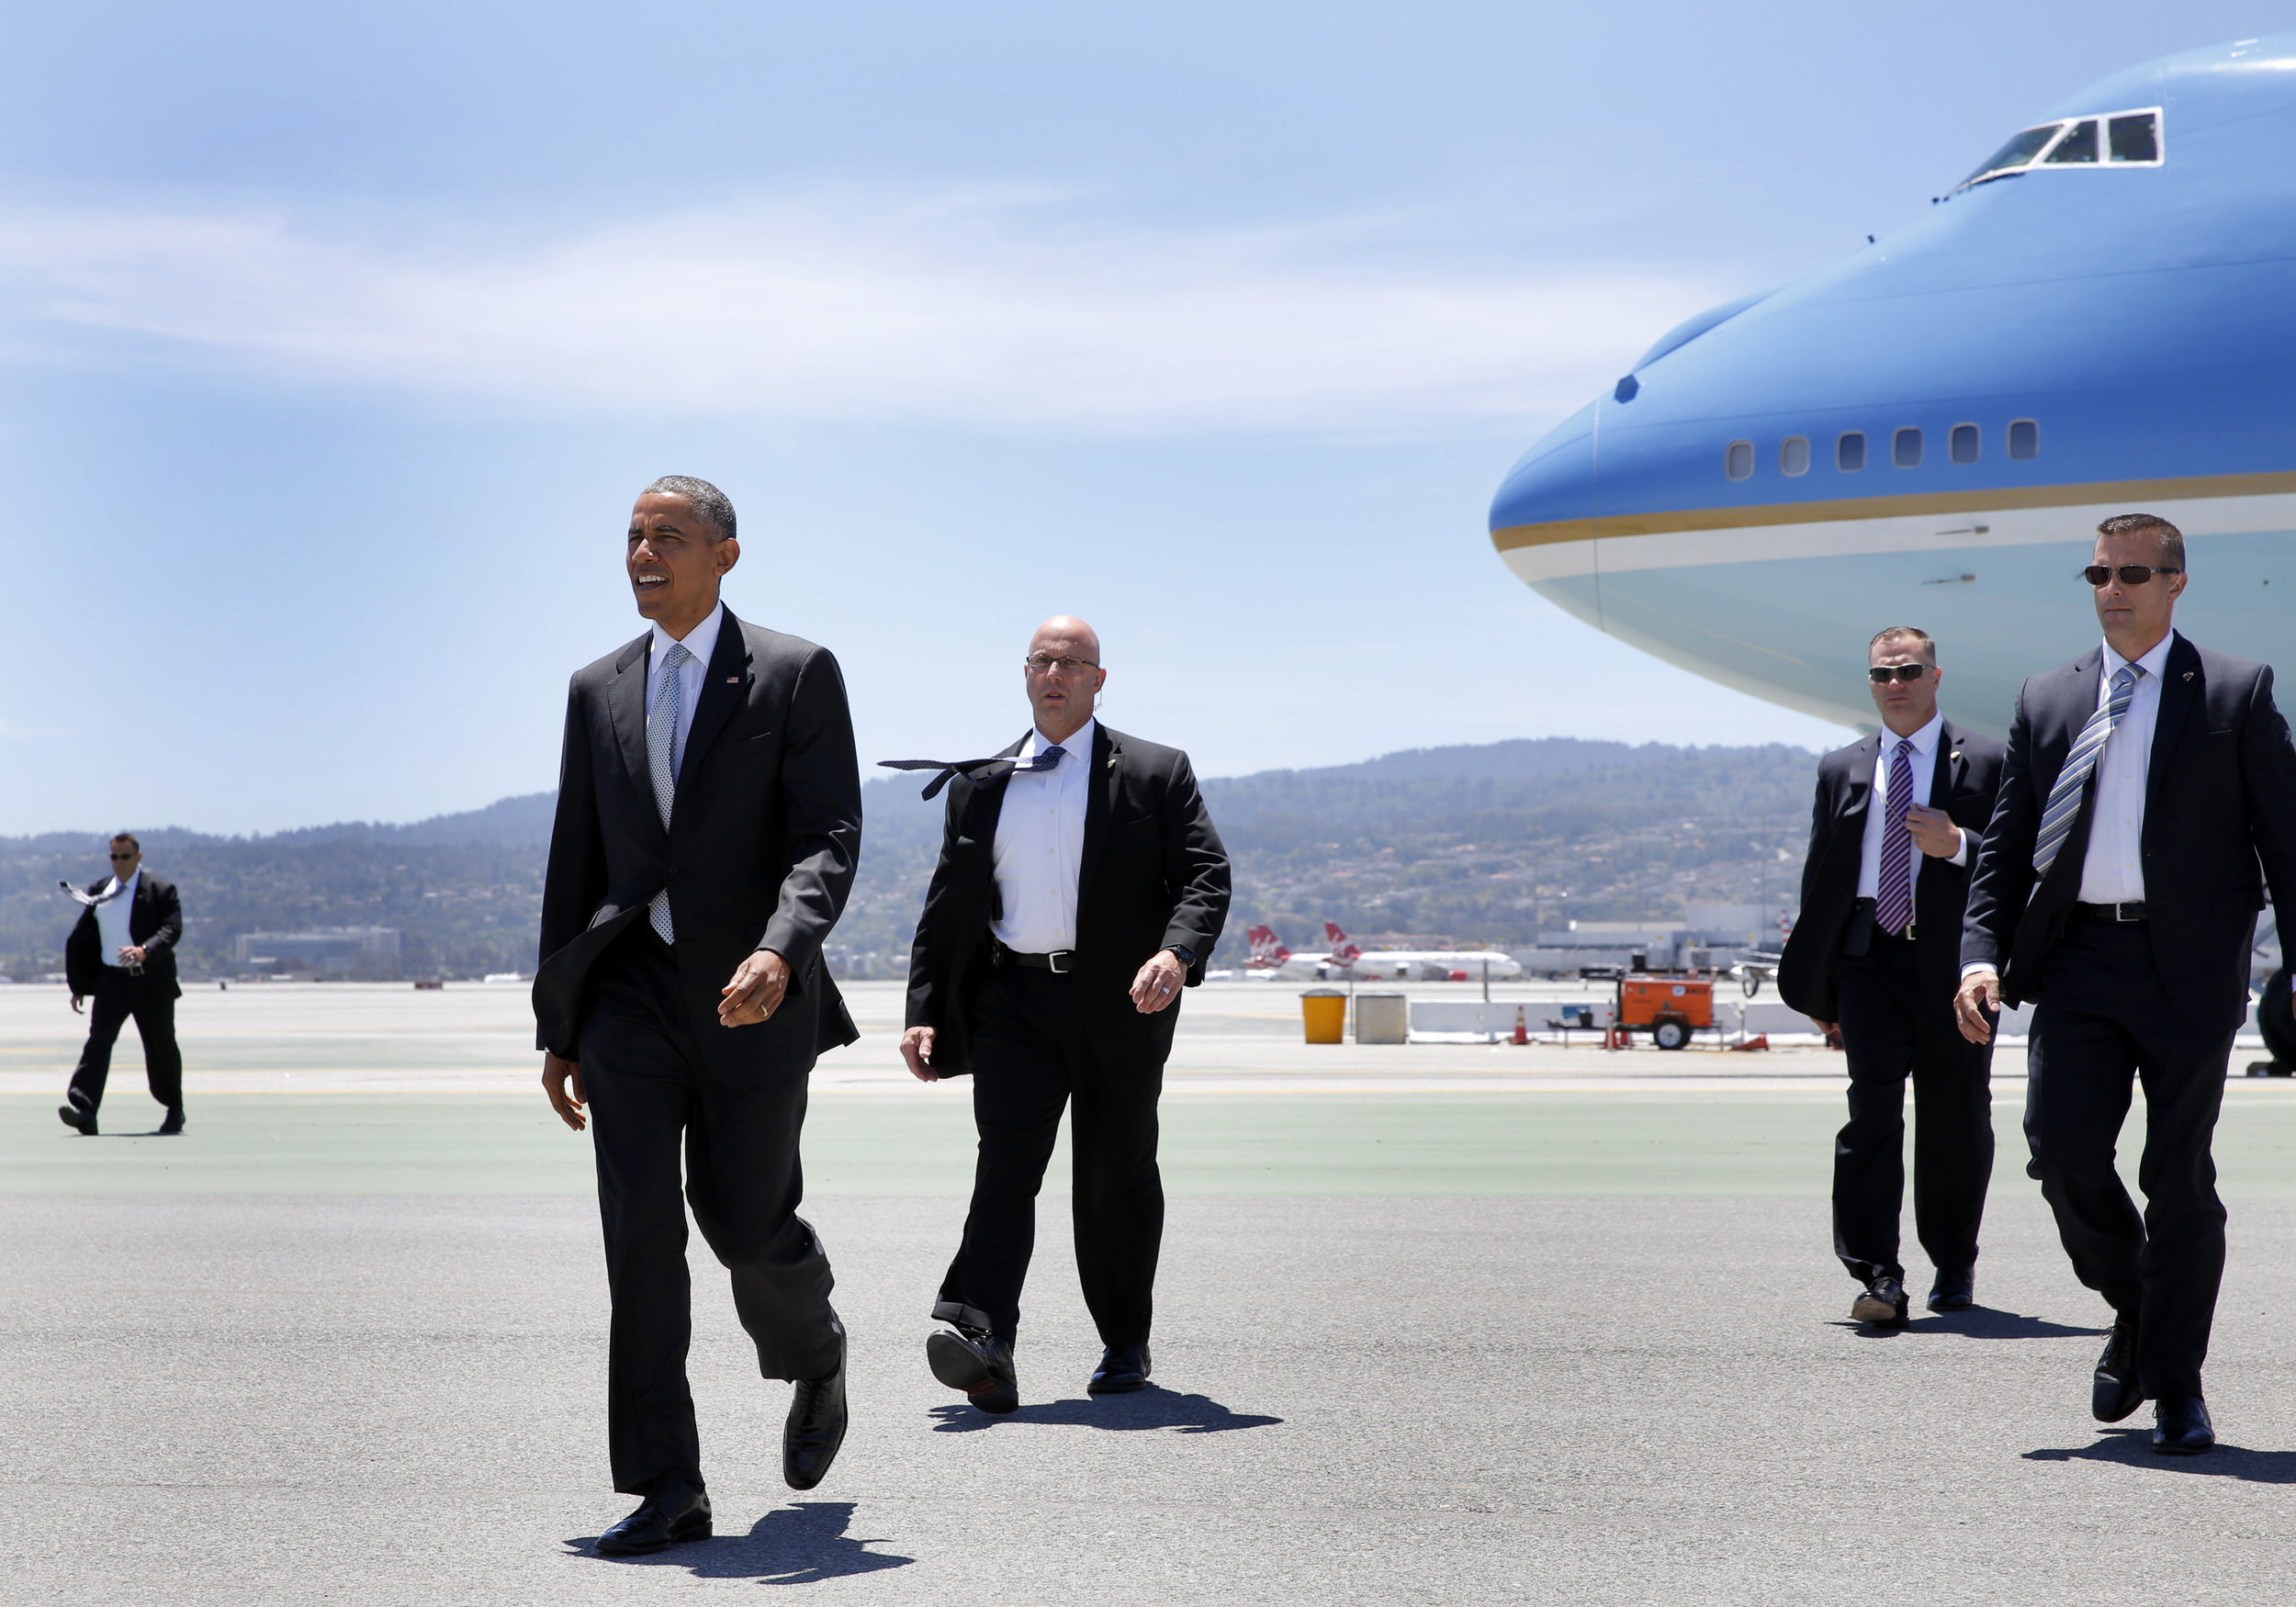 President Barack Obama and his Secret Service detail walk from Air Force One after landing at San Francisco International Airport on Friday, June 19, 2015.